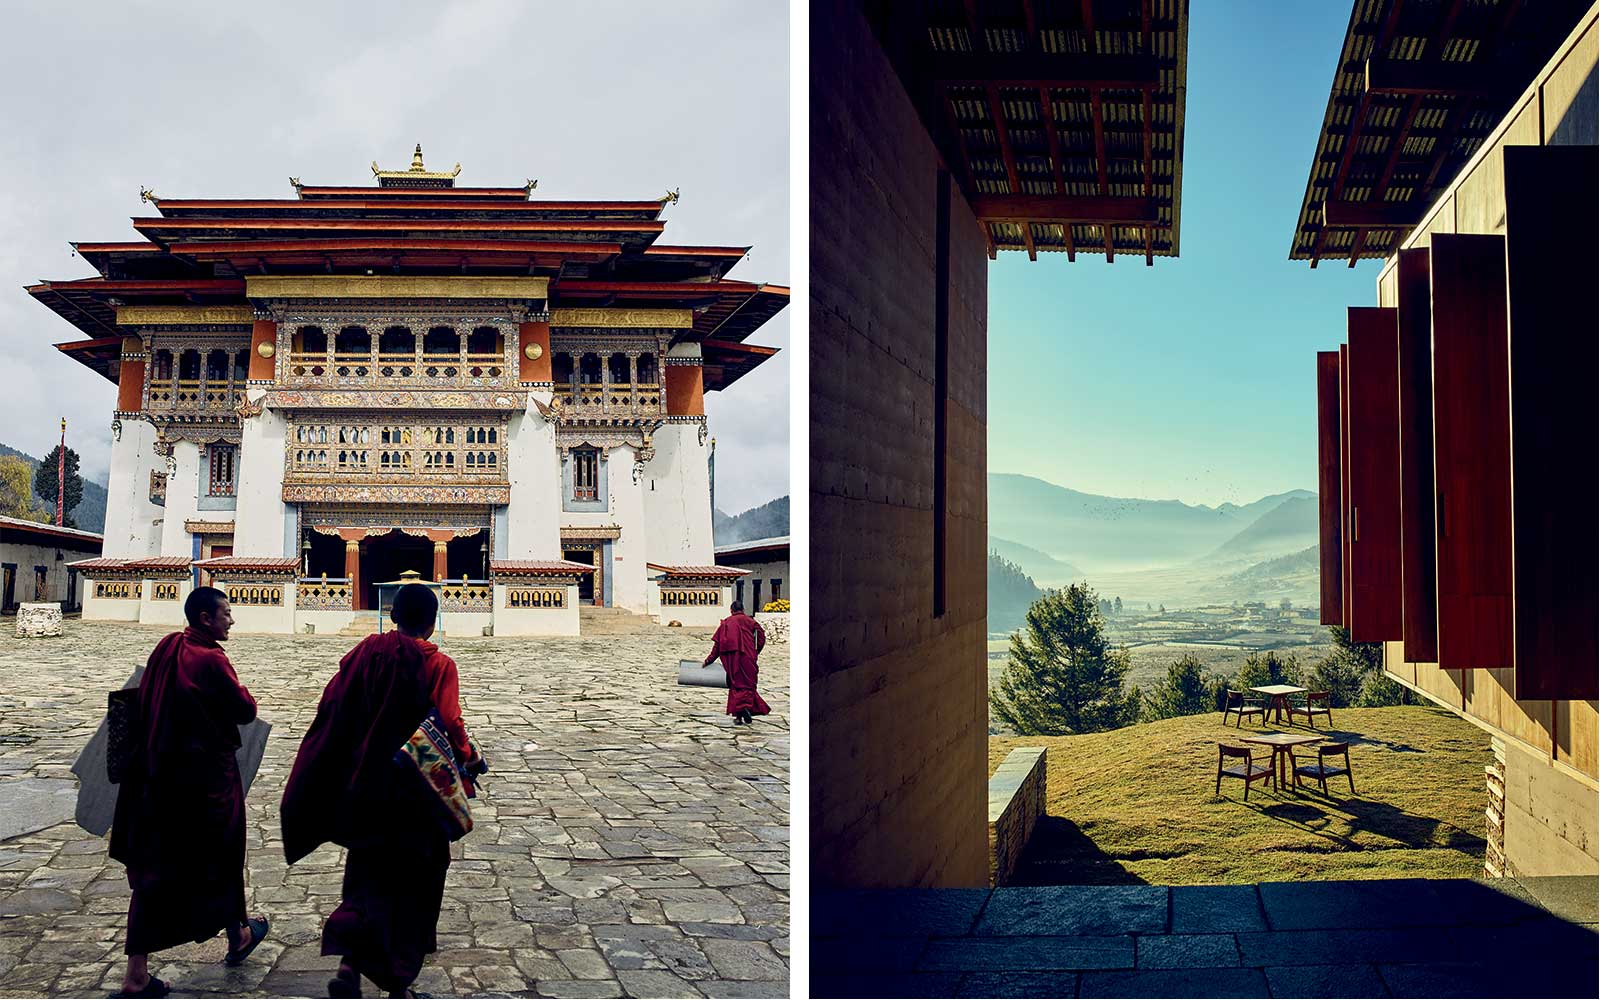 Gangtey Monastery and the new Amankora Gangtey, in Bhutan